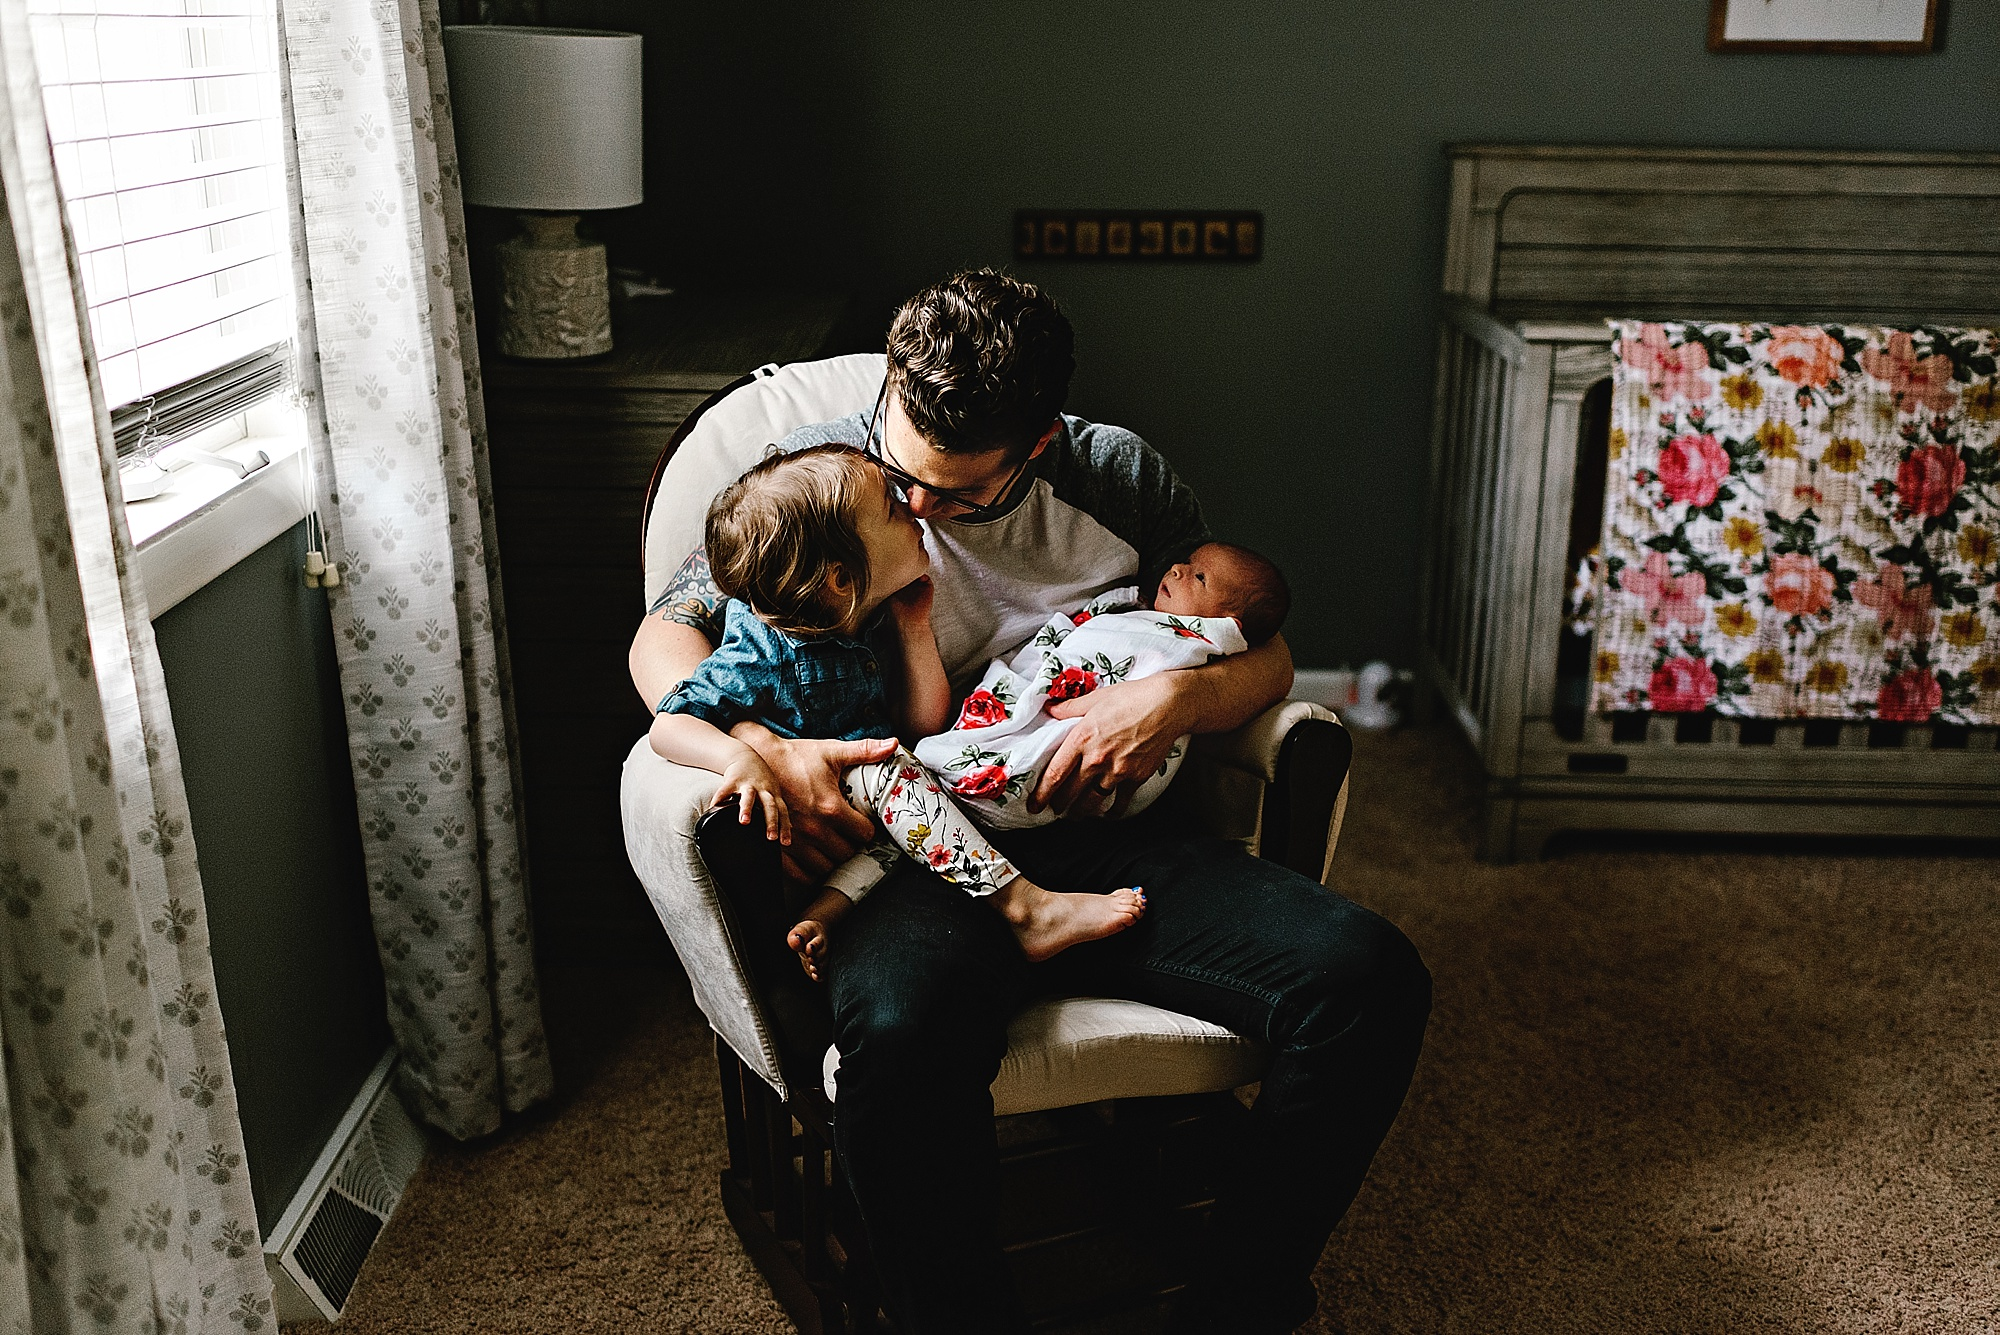 lauren-grayson-photography-cleveland-ohio-photographer-newborn-session-in-home-lifestyle-josephine_0621.jpg